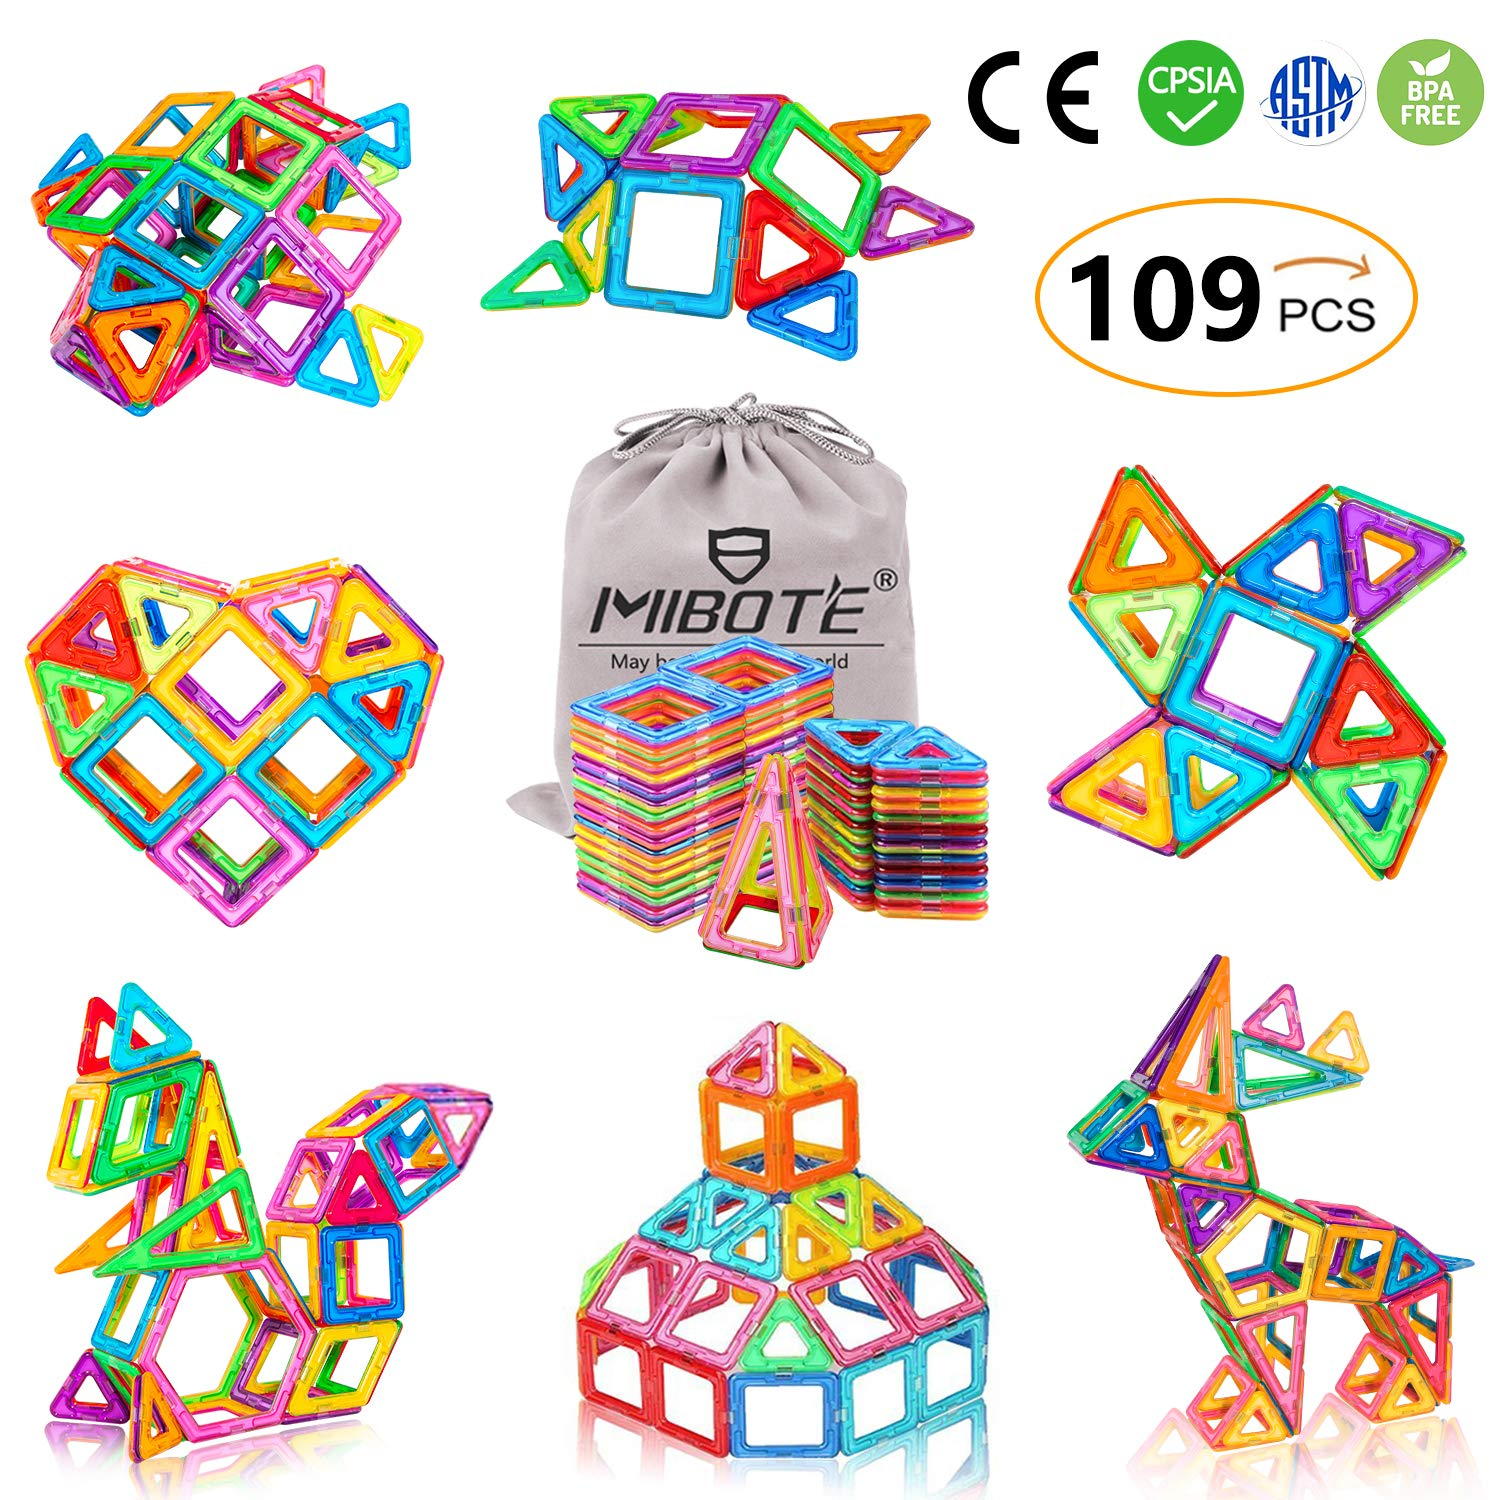 (109 PCS) Magnetic Building Blocks Educational Stacking Blocks Toddler Toys Preschool Boys Grils Toys with Car Wheel Toy Set for Kid's Educational and Creative Imagination Development by Mibote product image